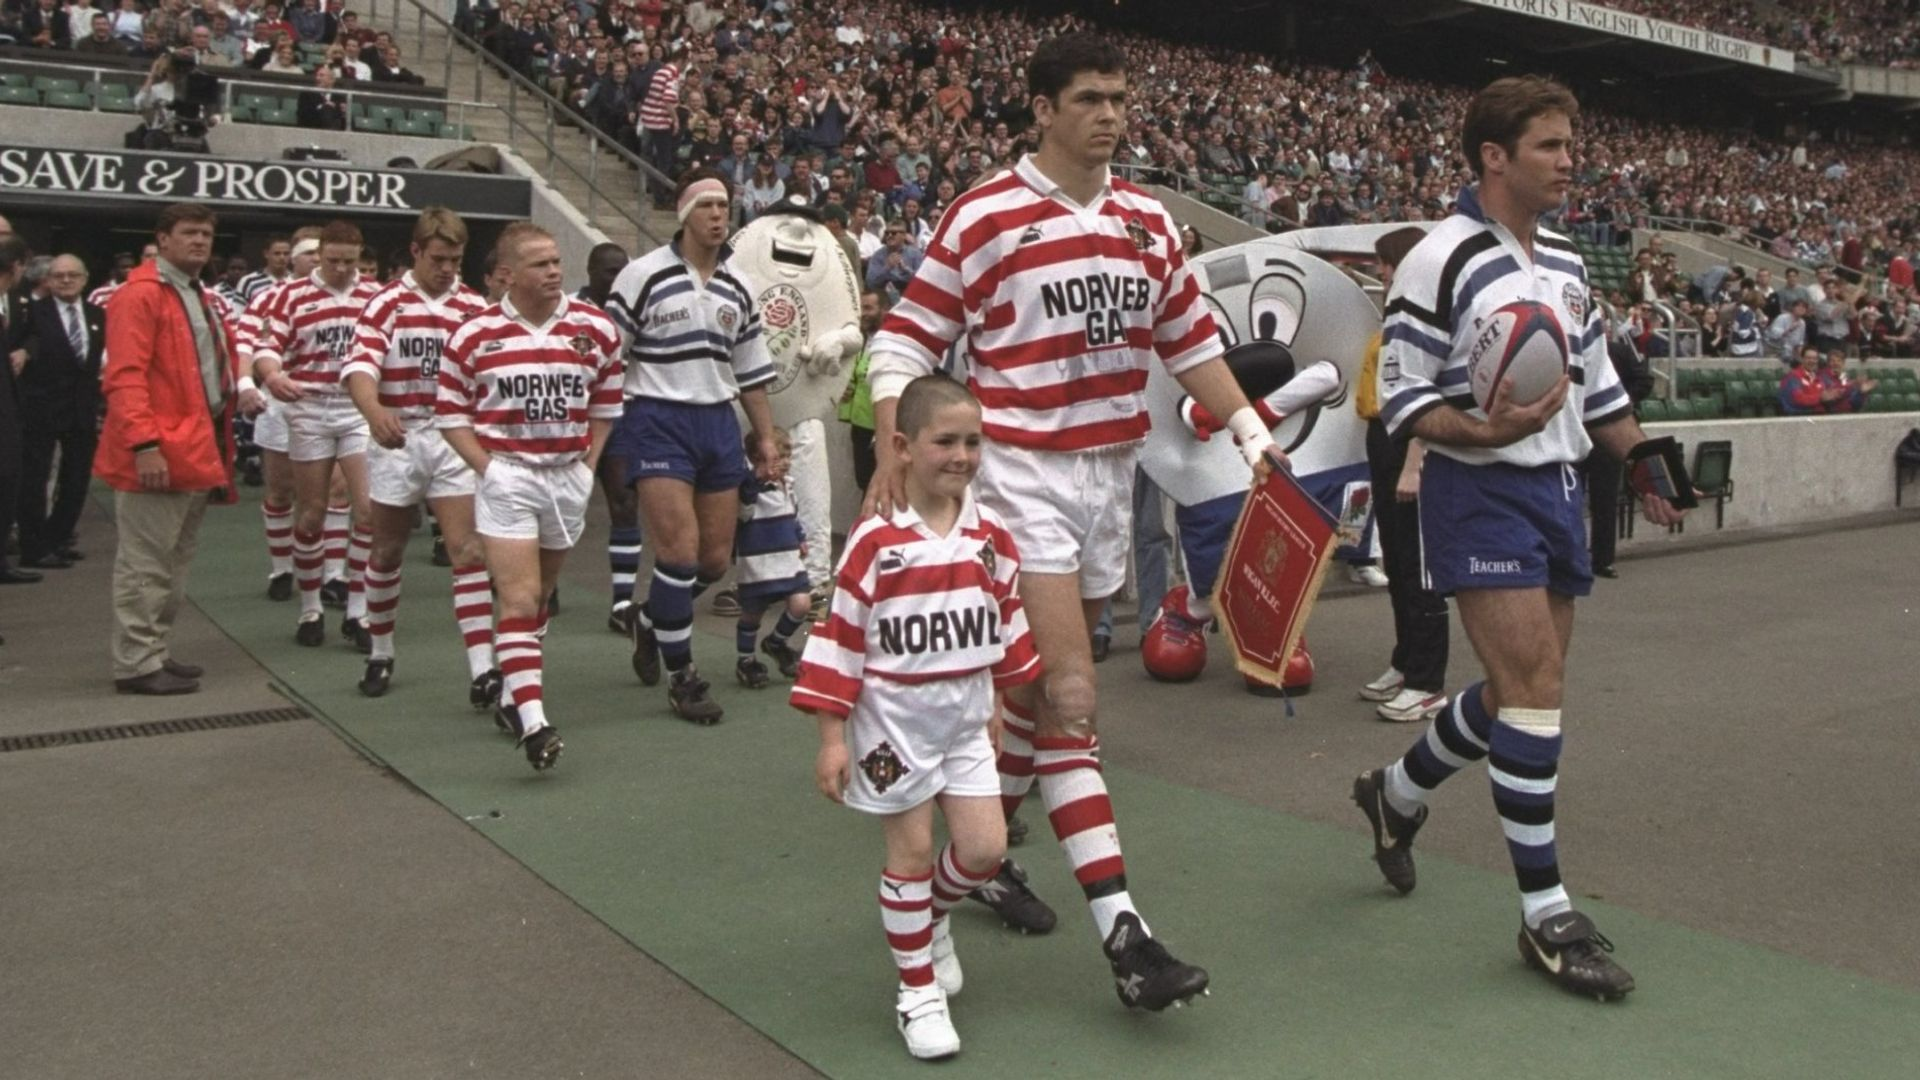 Wigan vs Bath: When rugby's wall came down